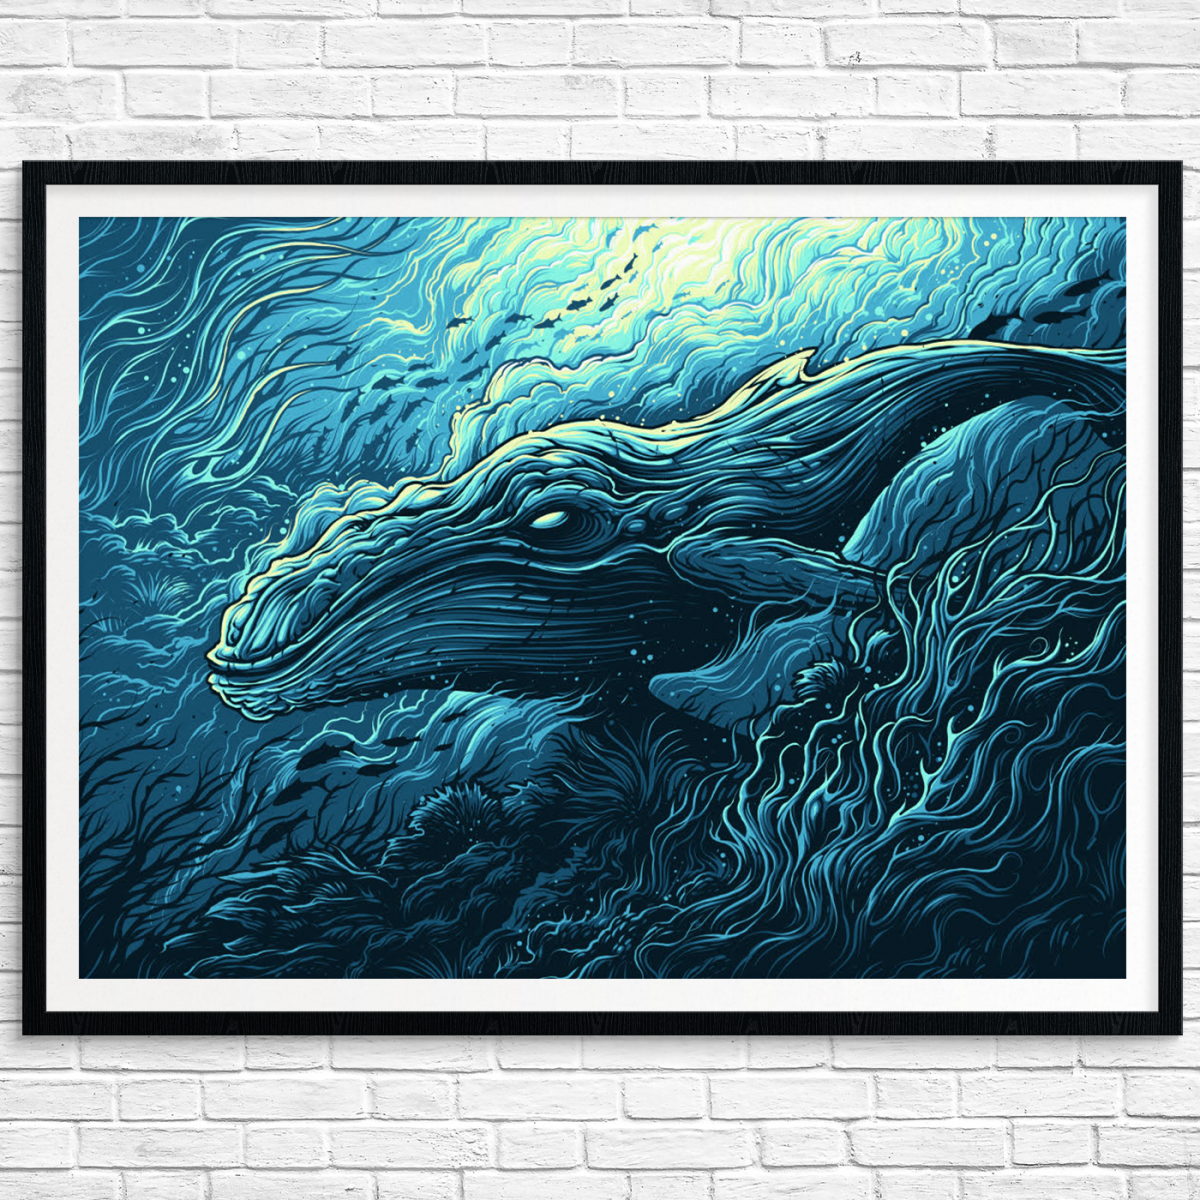 """Megaptera Novaeangliae"" by Dan Mumford.  24"" x 18"" 5-color Screenprint.  Ed of 50 N.  $50"